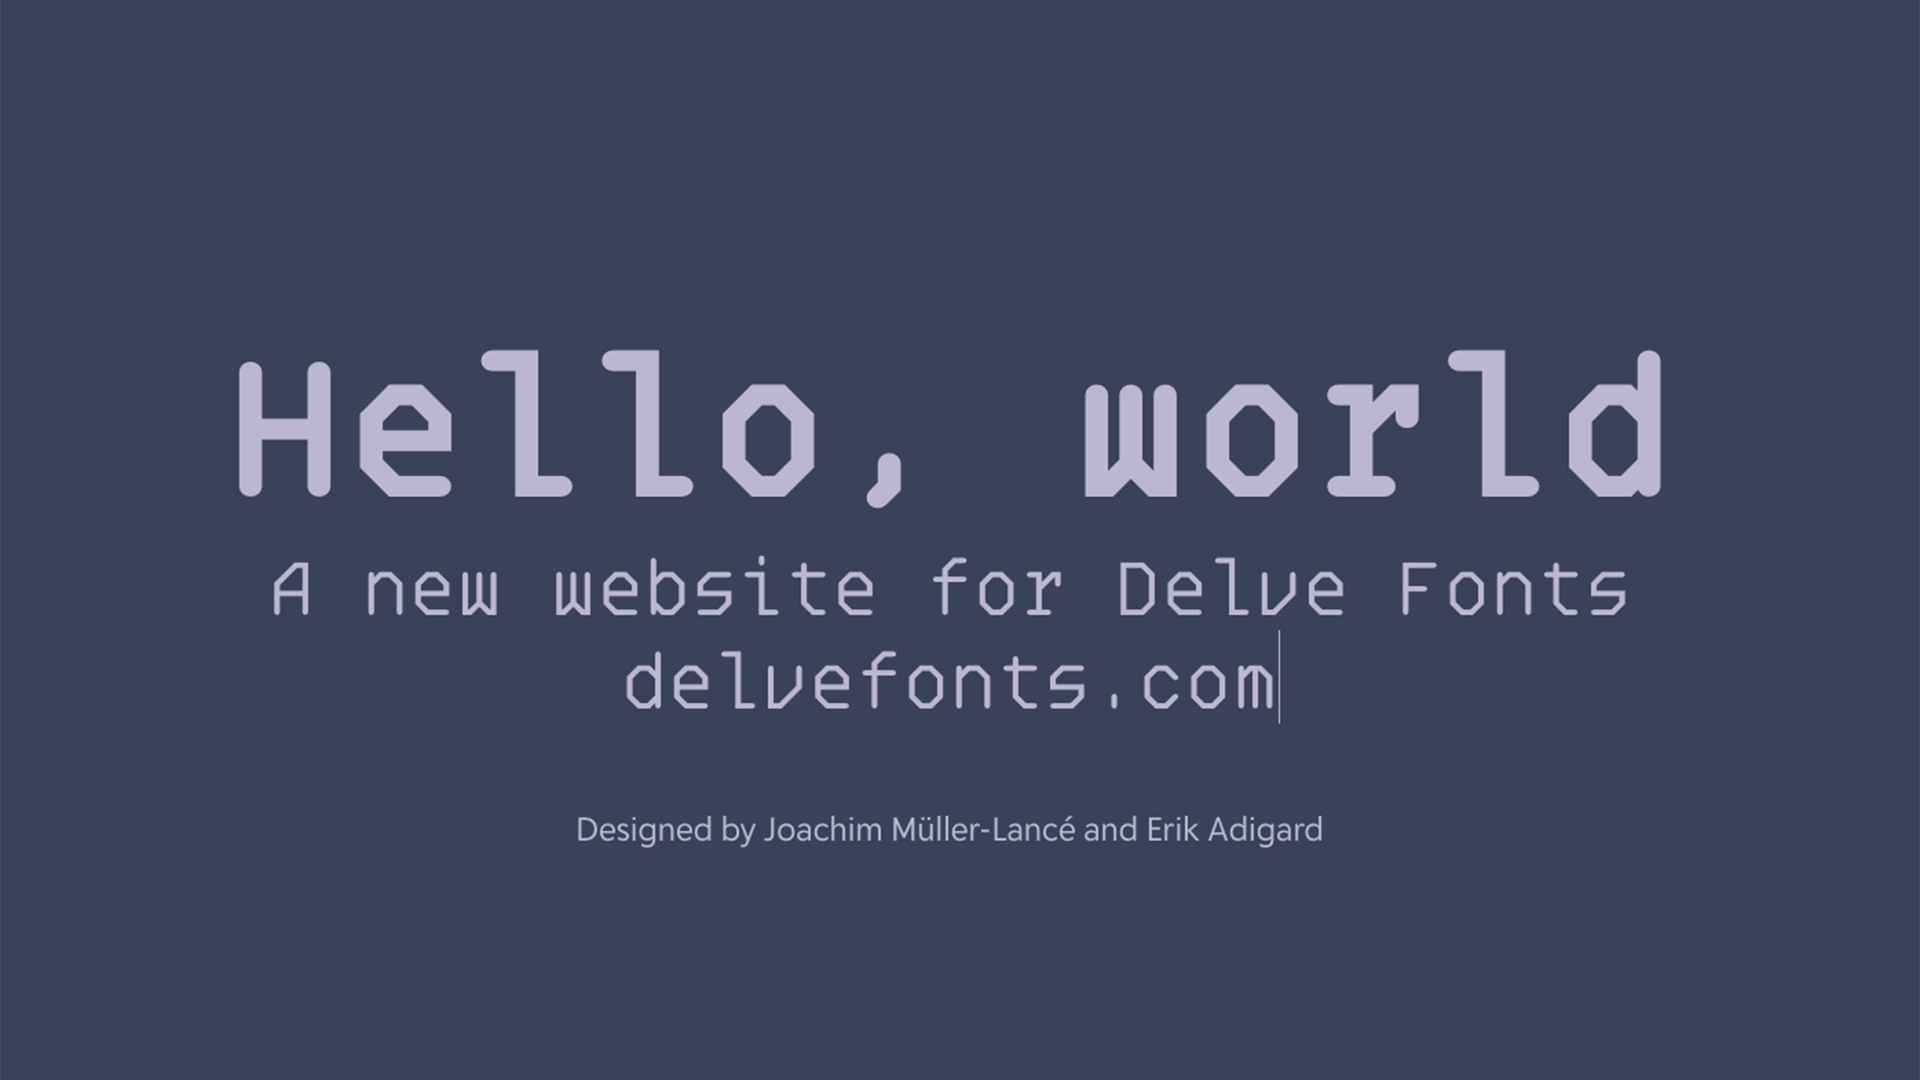 Hello, world: A new website for Delve Fonts